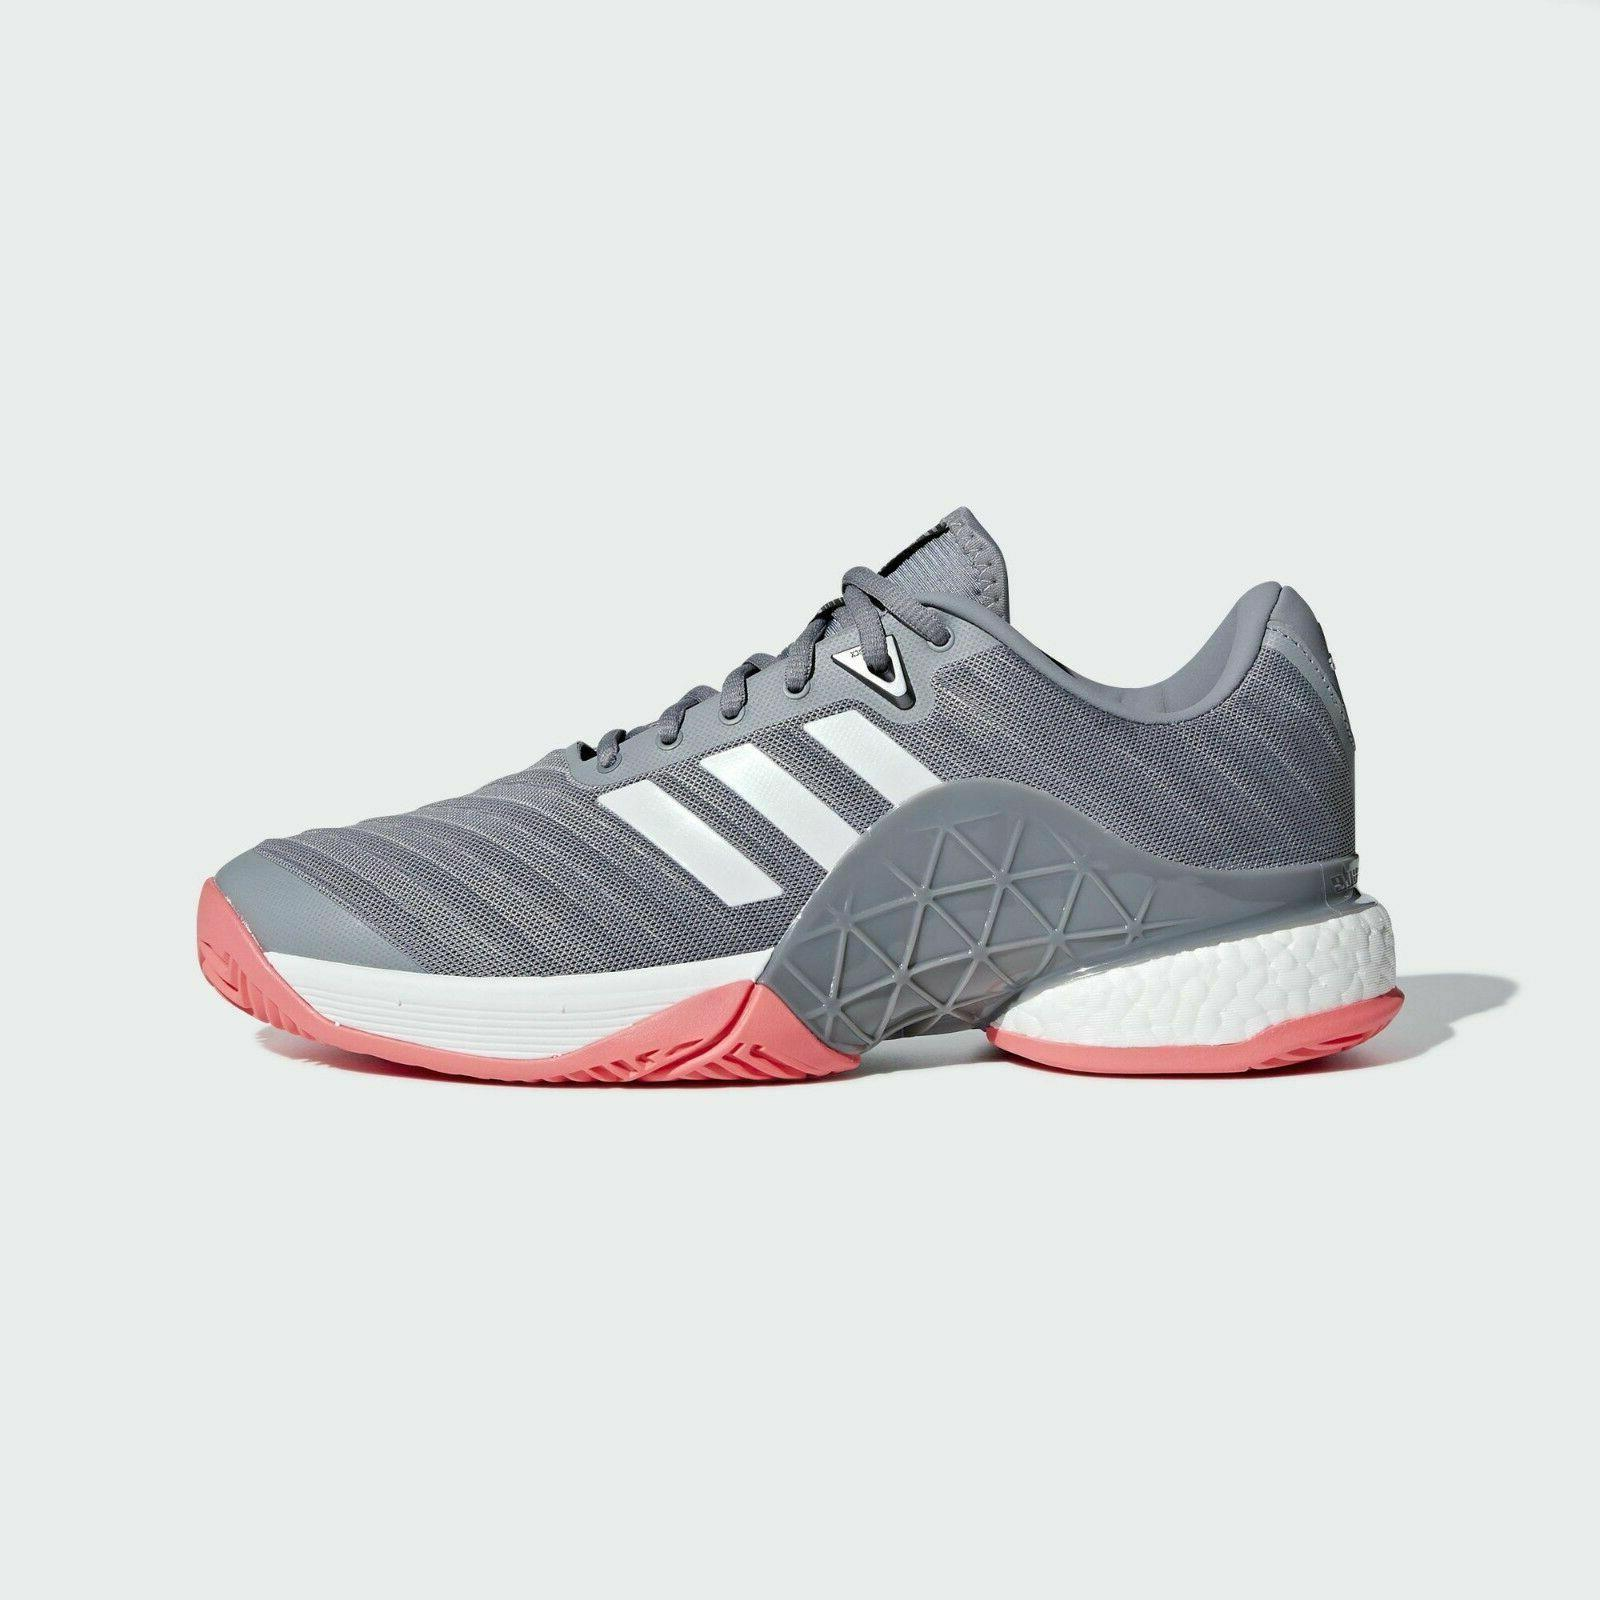 NEW Men's Adidas Barricade Boost AH2094 Shoes Size